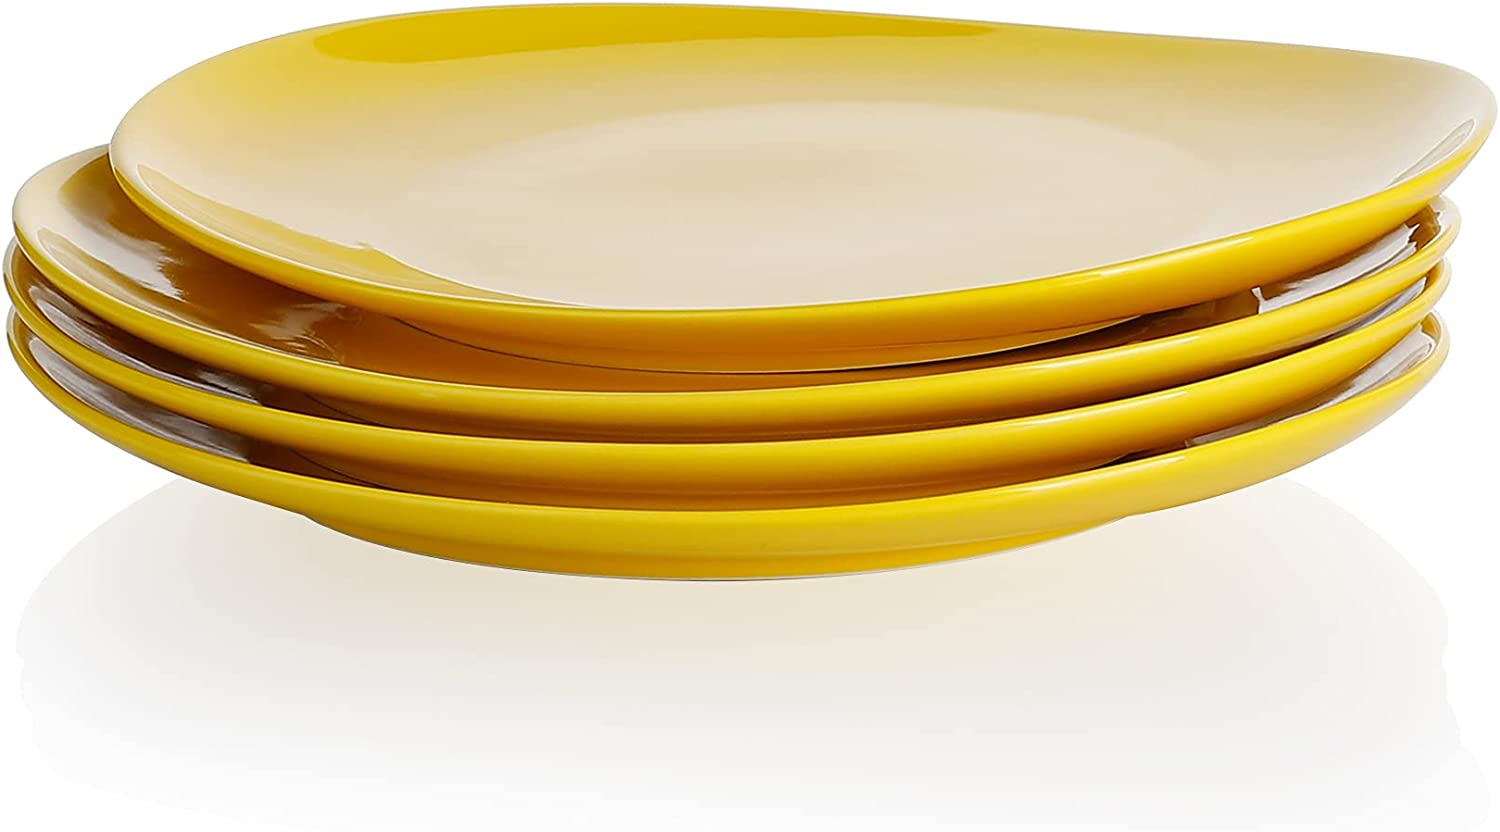 Sweese 150.405 Porcelain Dinner Plates - Max 69% OFF Yel of 4 Inch Set Ranking TOP12 11